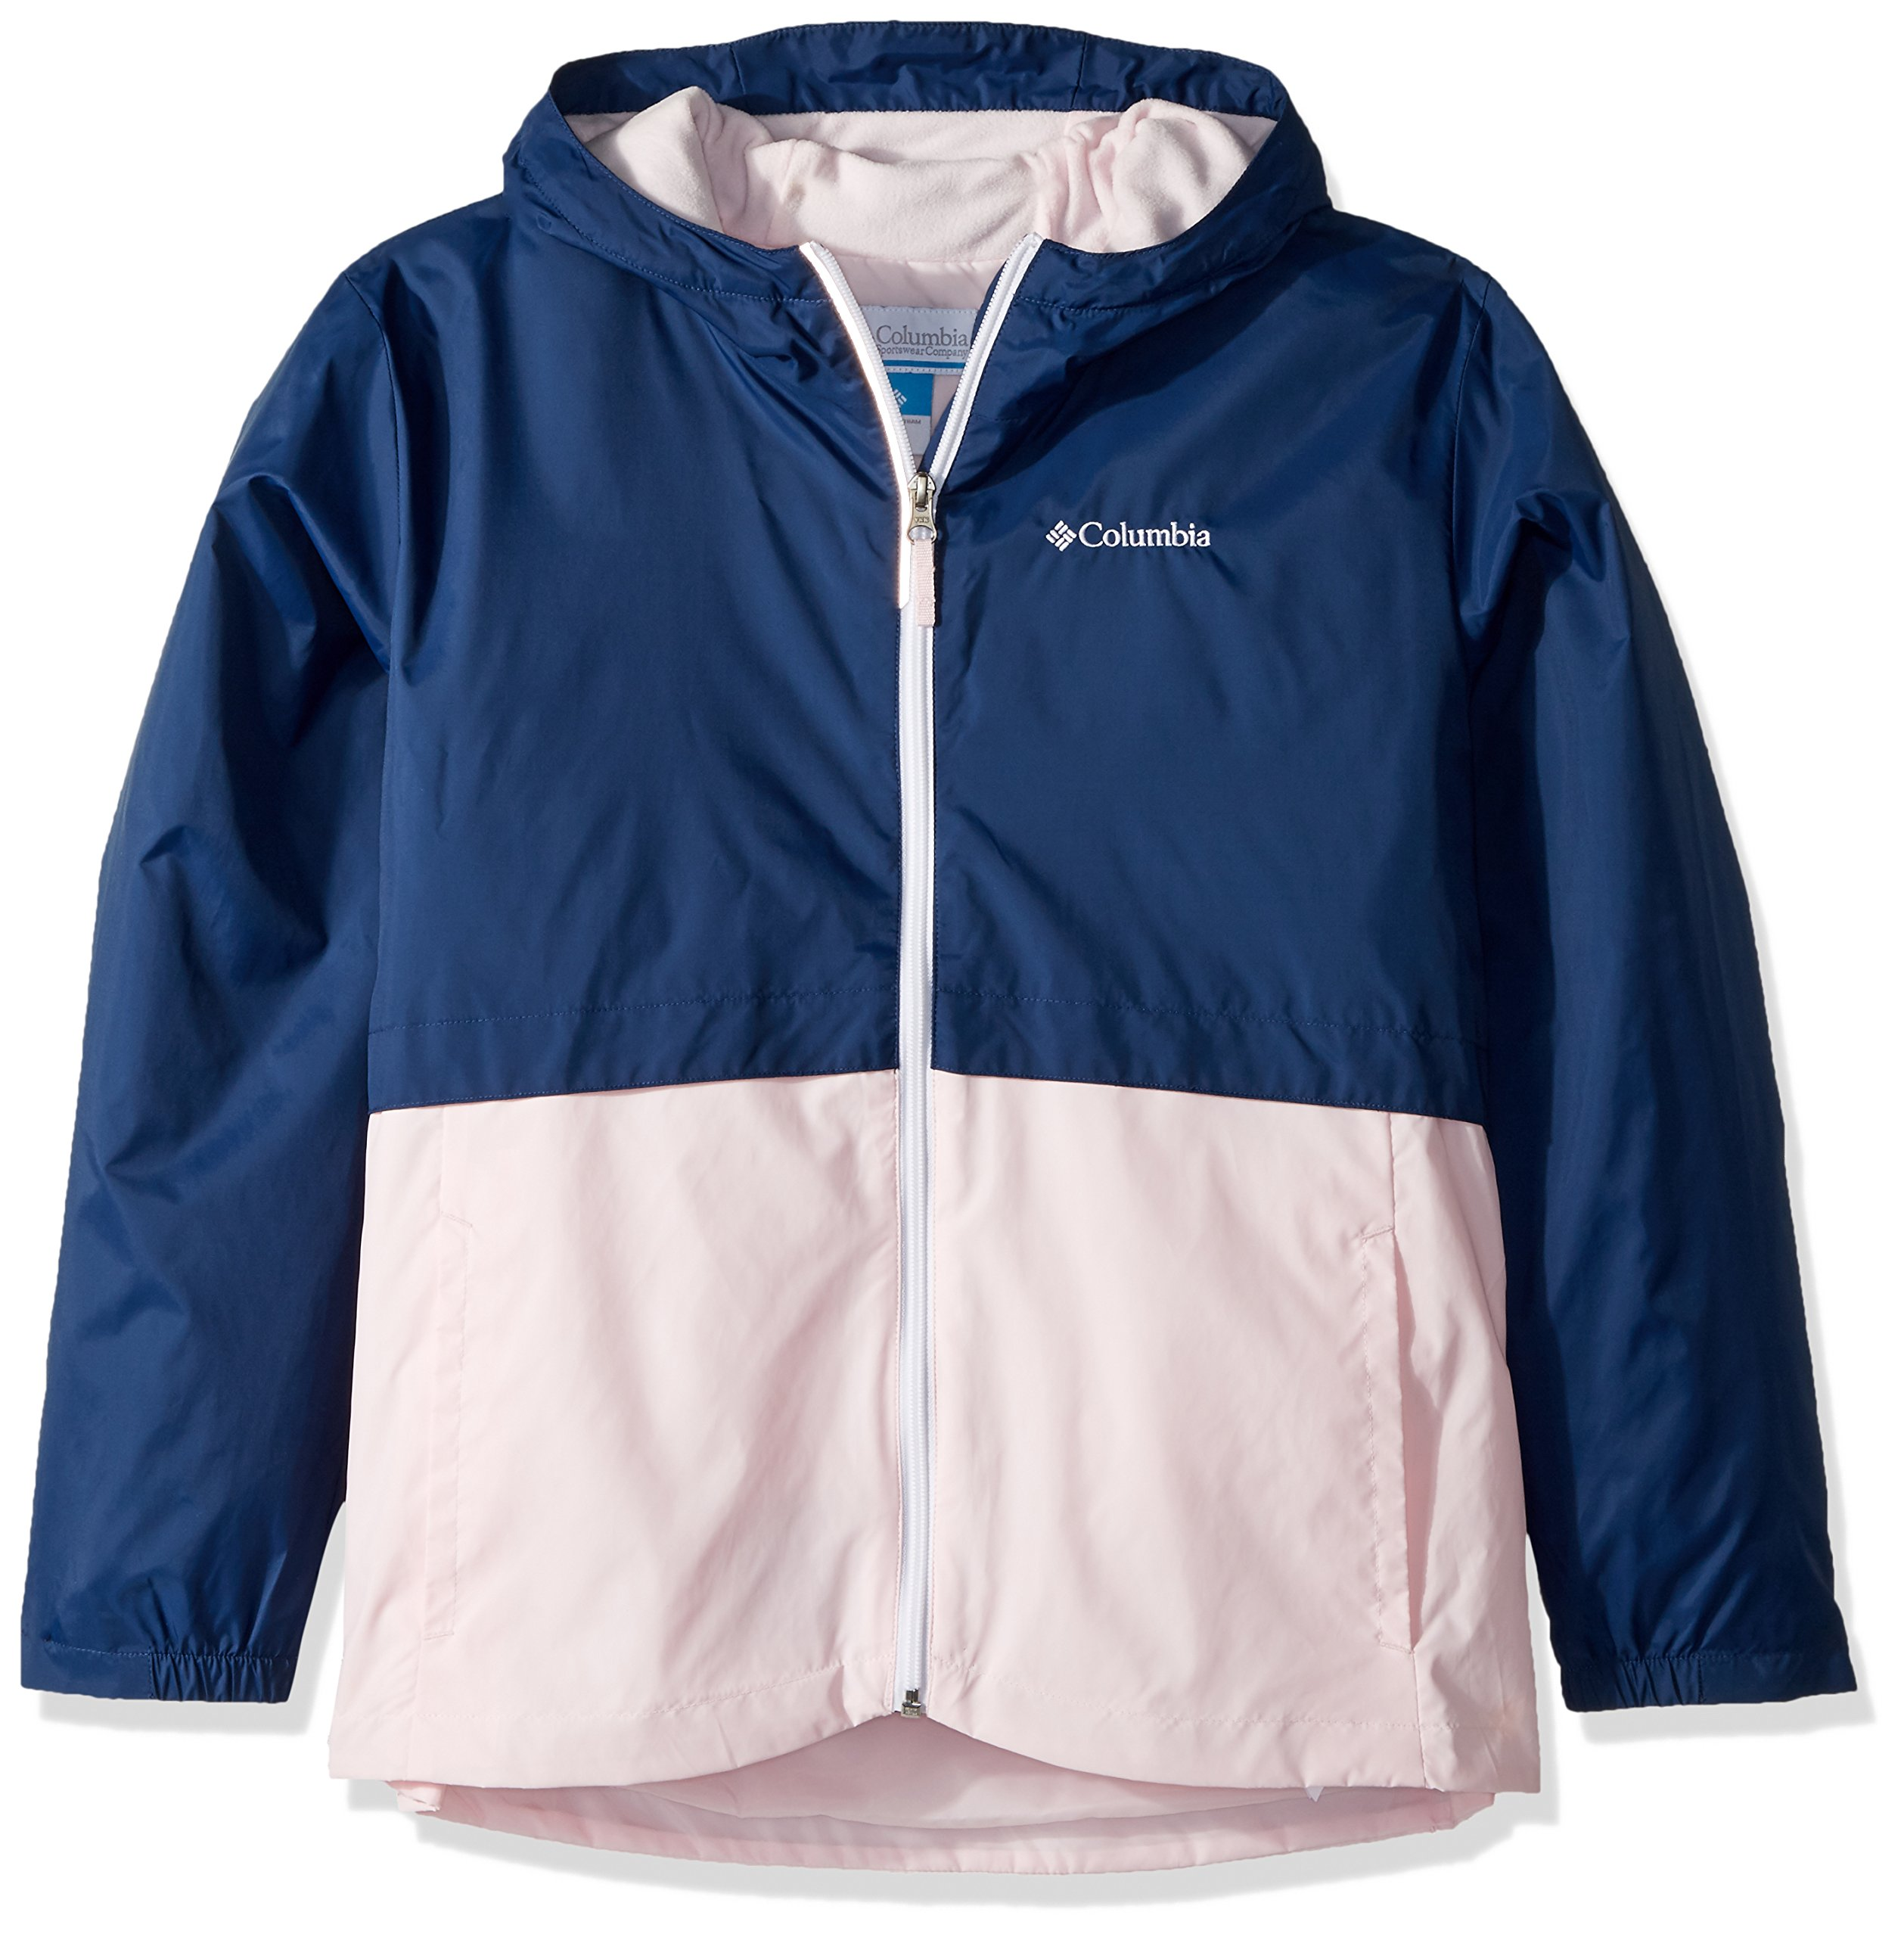 Columbia Little Girl's Rain-Zilla Jacket, Carbon, Whitened Pink, S